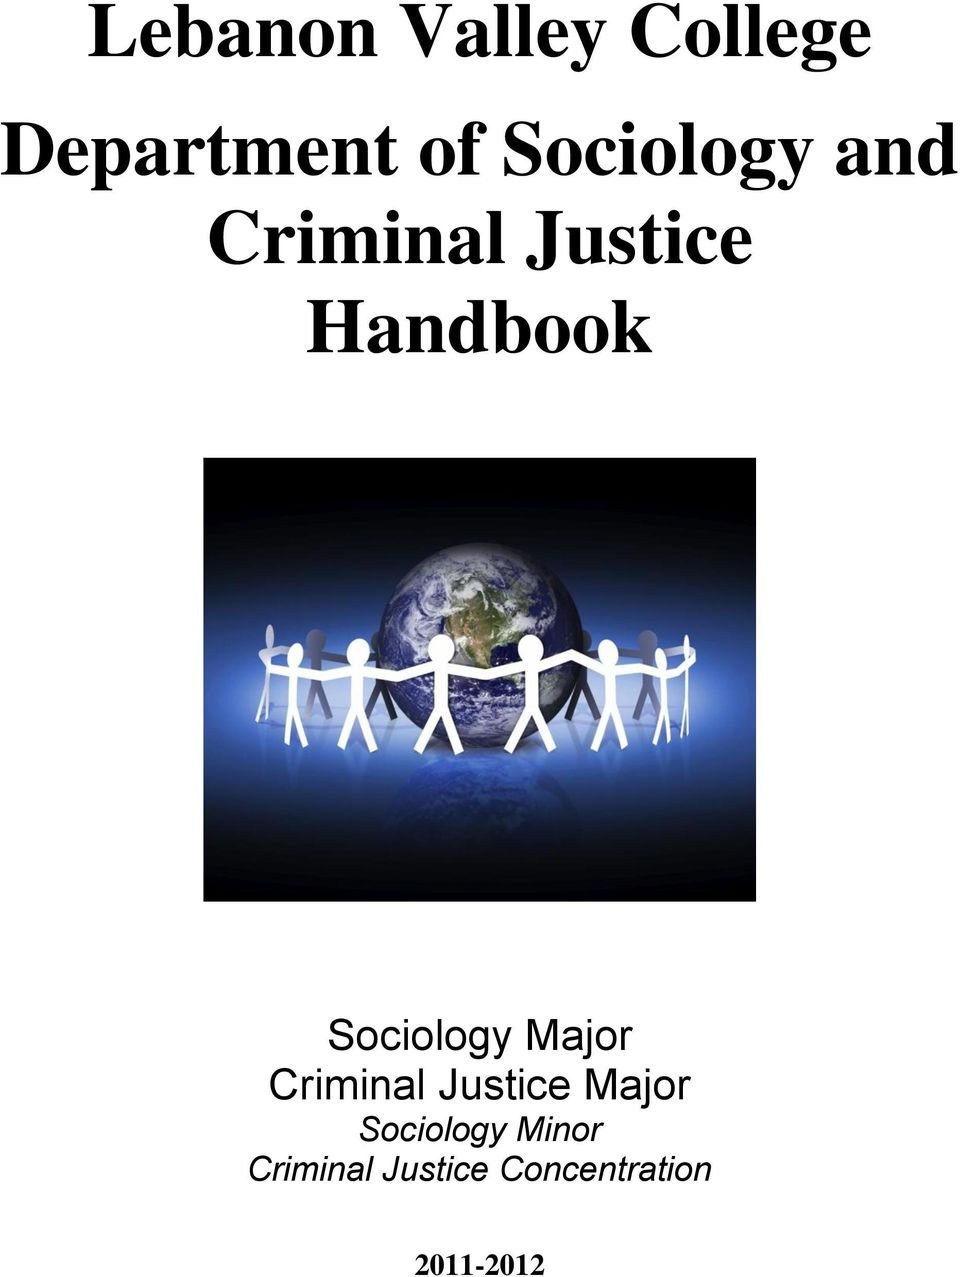 Sociology Major Criminal Justice Major